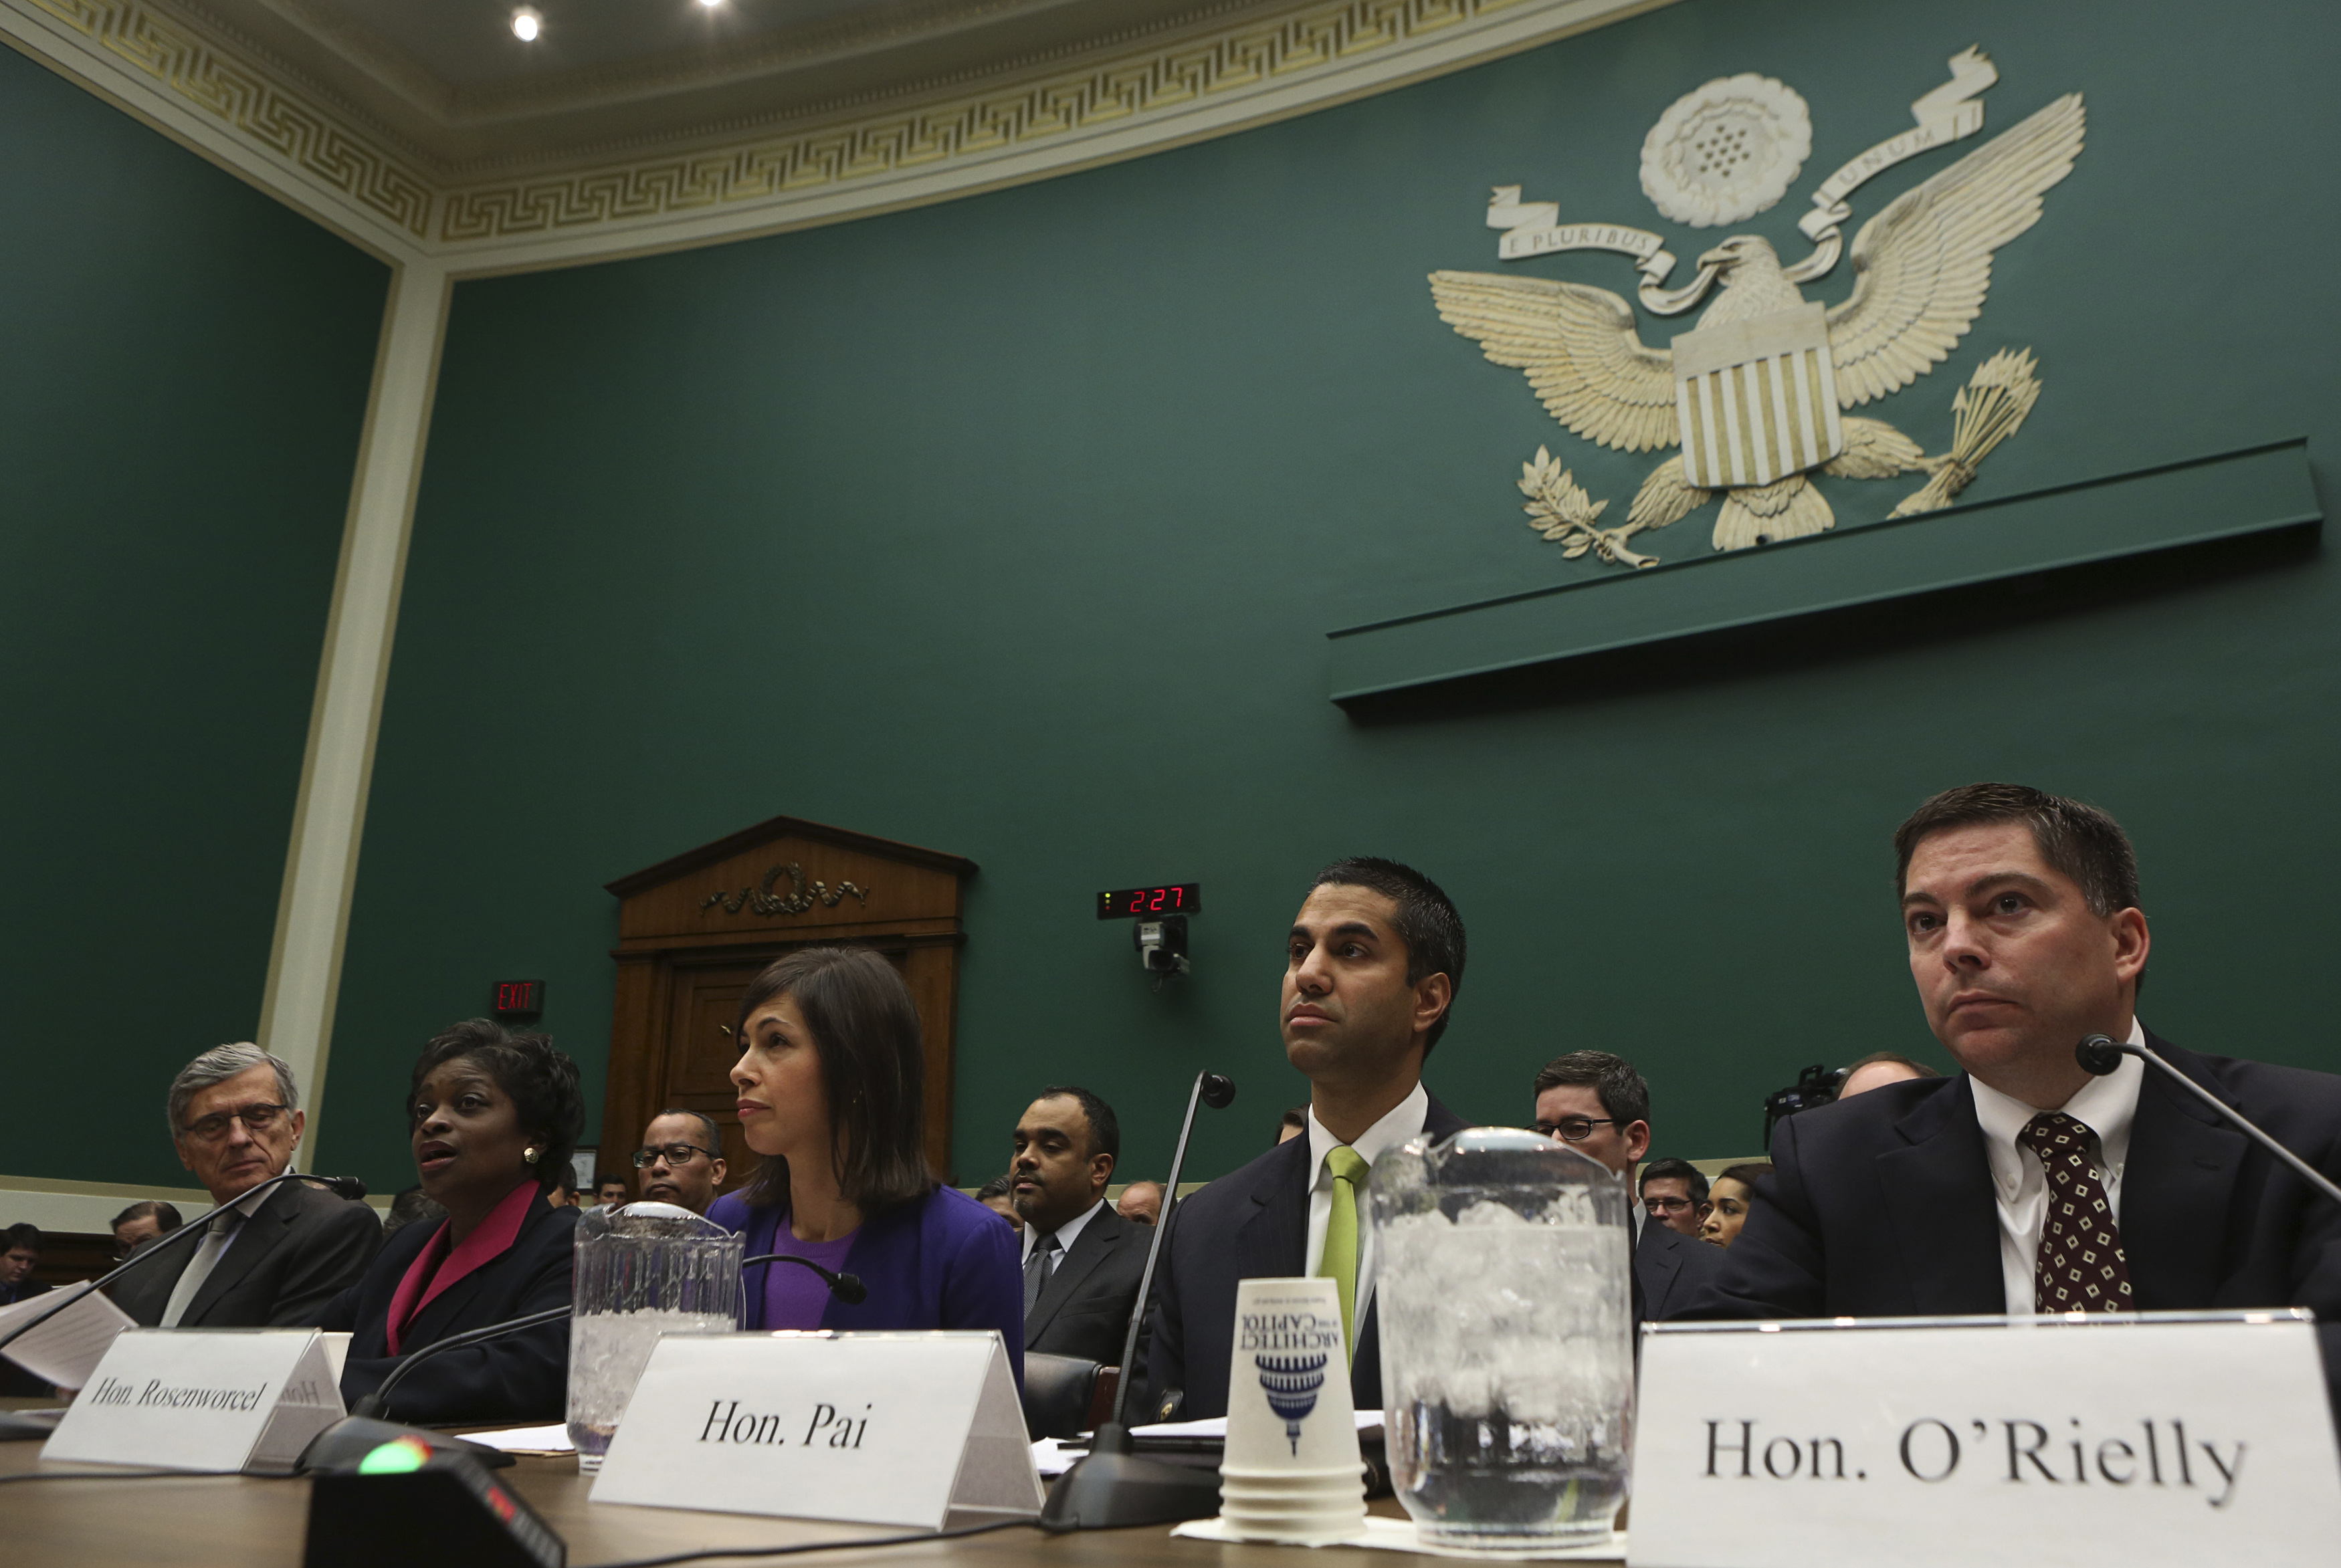 (L-R) FCC Chairman Tom Wheeler, Commissioners Mignon Clyburn, Jessica Rosenworcel, Ajit Pai, andr Mike O'Rielly testify before the House Communications and Technology panel on Capitol Hill in Washington December 12, 2013. REUTERS/Gary Cameron